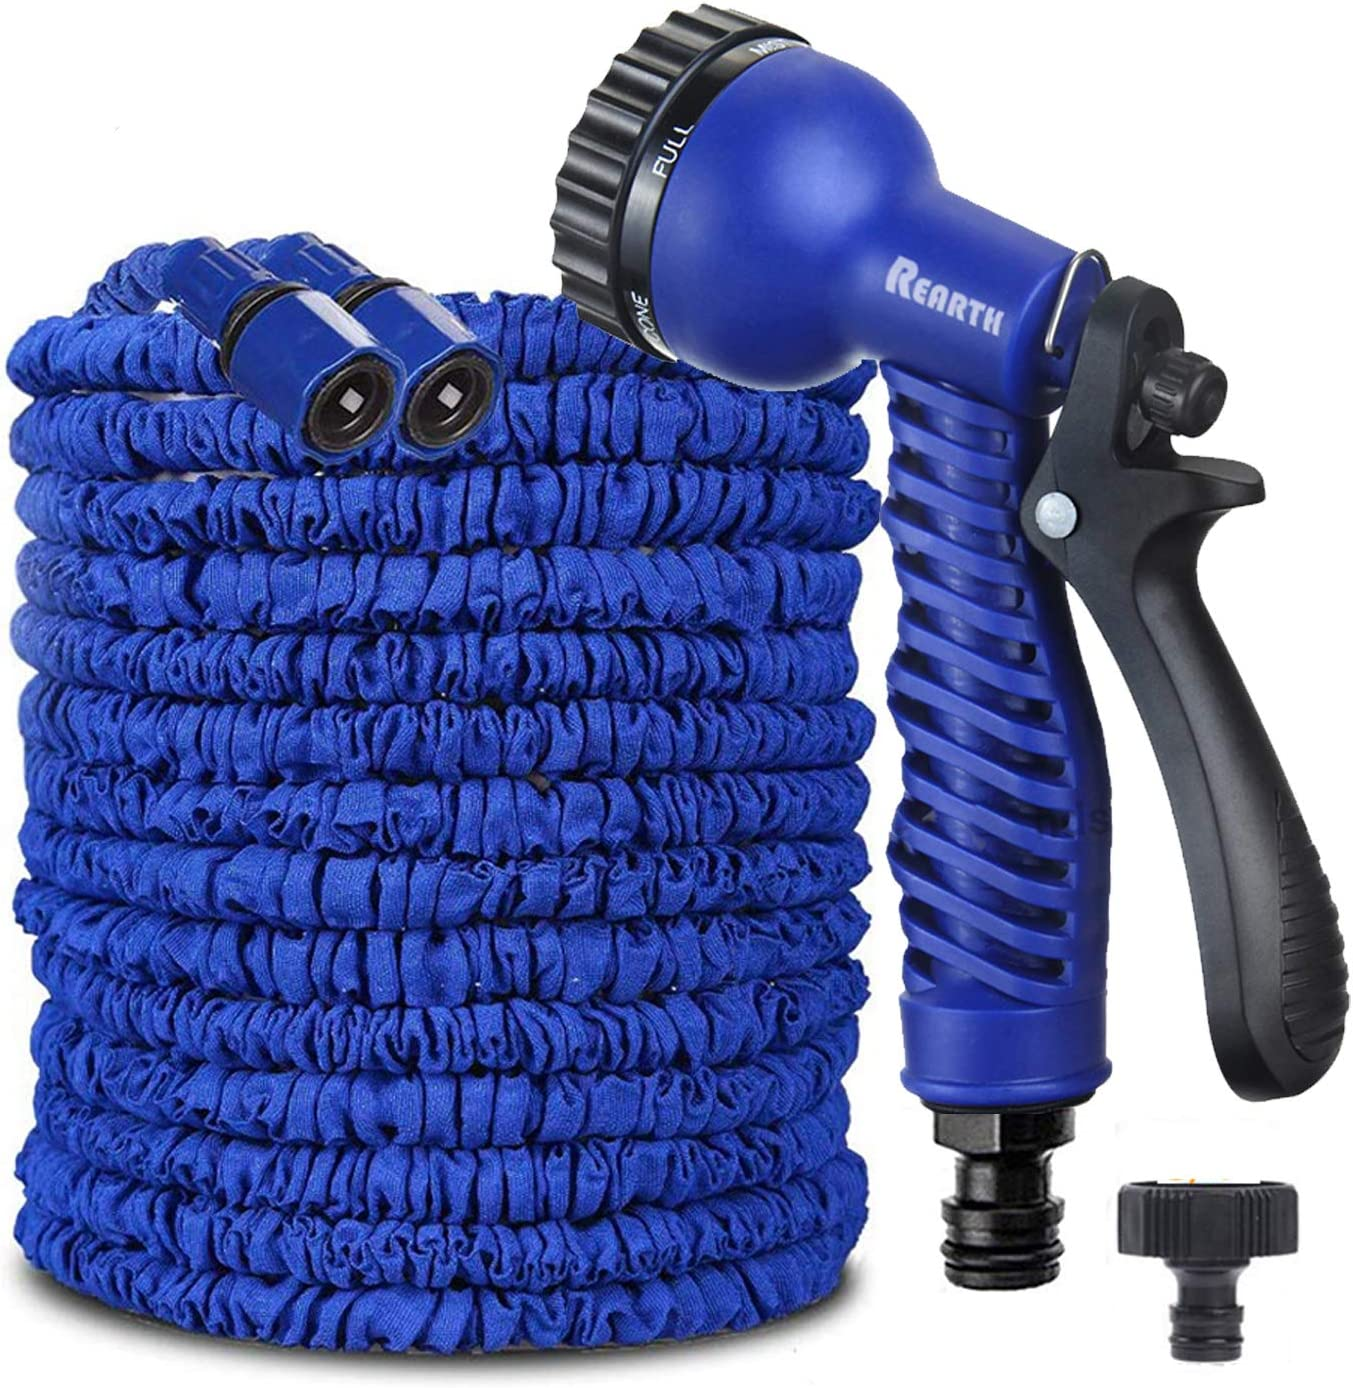 """REARTH Magic Stretch Flexible Expandable 3 x Expanding Garden Hose Pipe Natural Triple Layer Light Weight Non Kink with 3/4"""" Solid Fittings & 7 Setting Professional Water Spray Nozzle (100 FT)"""